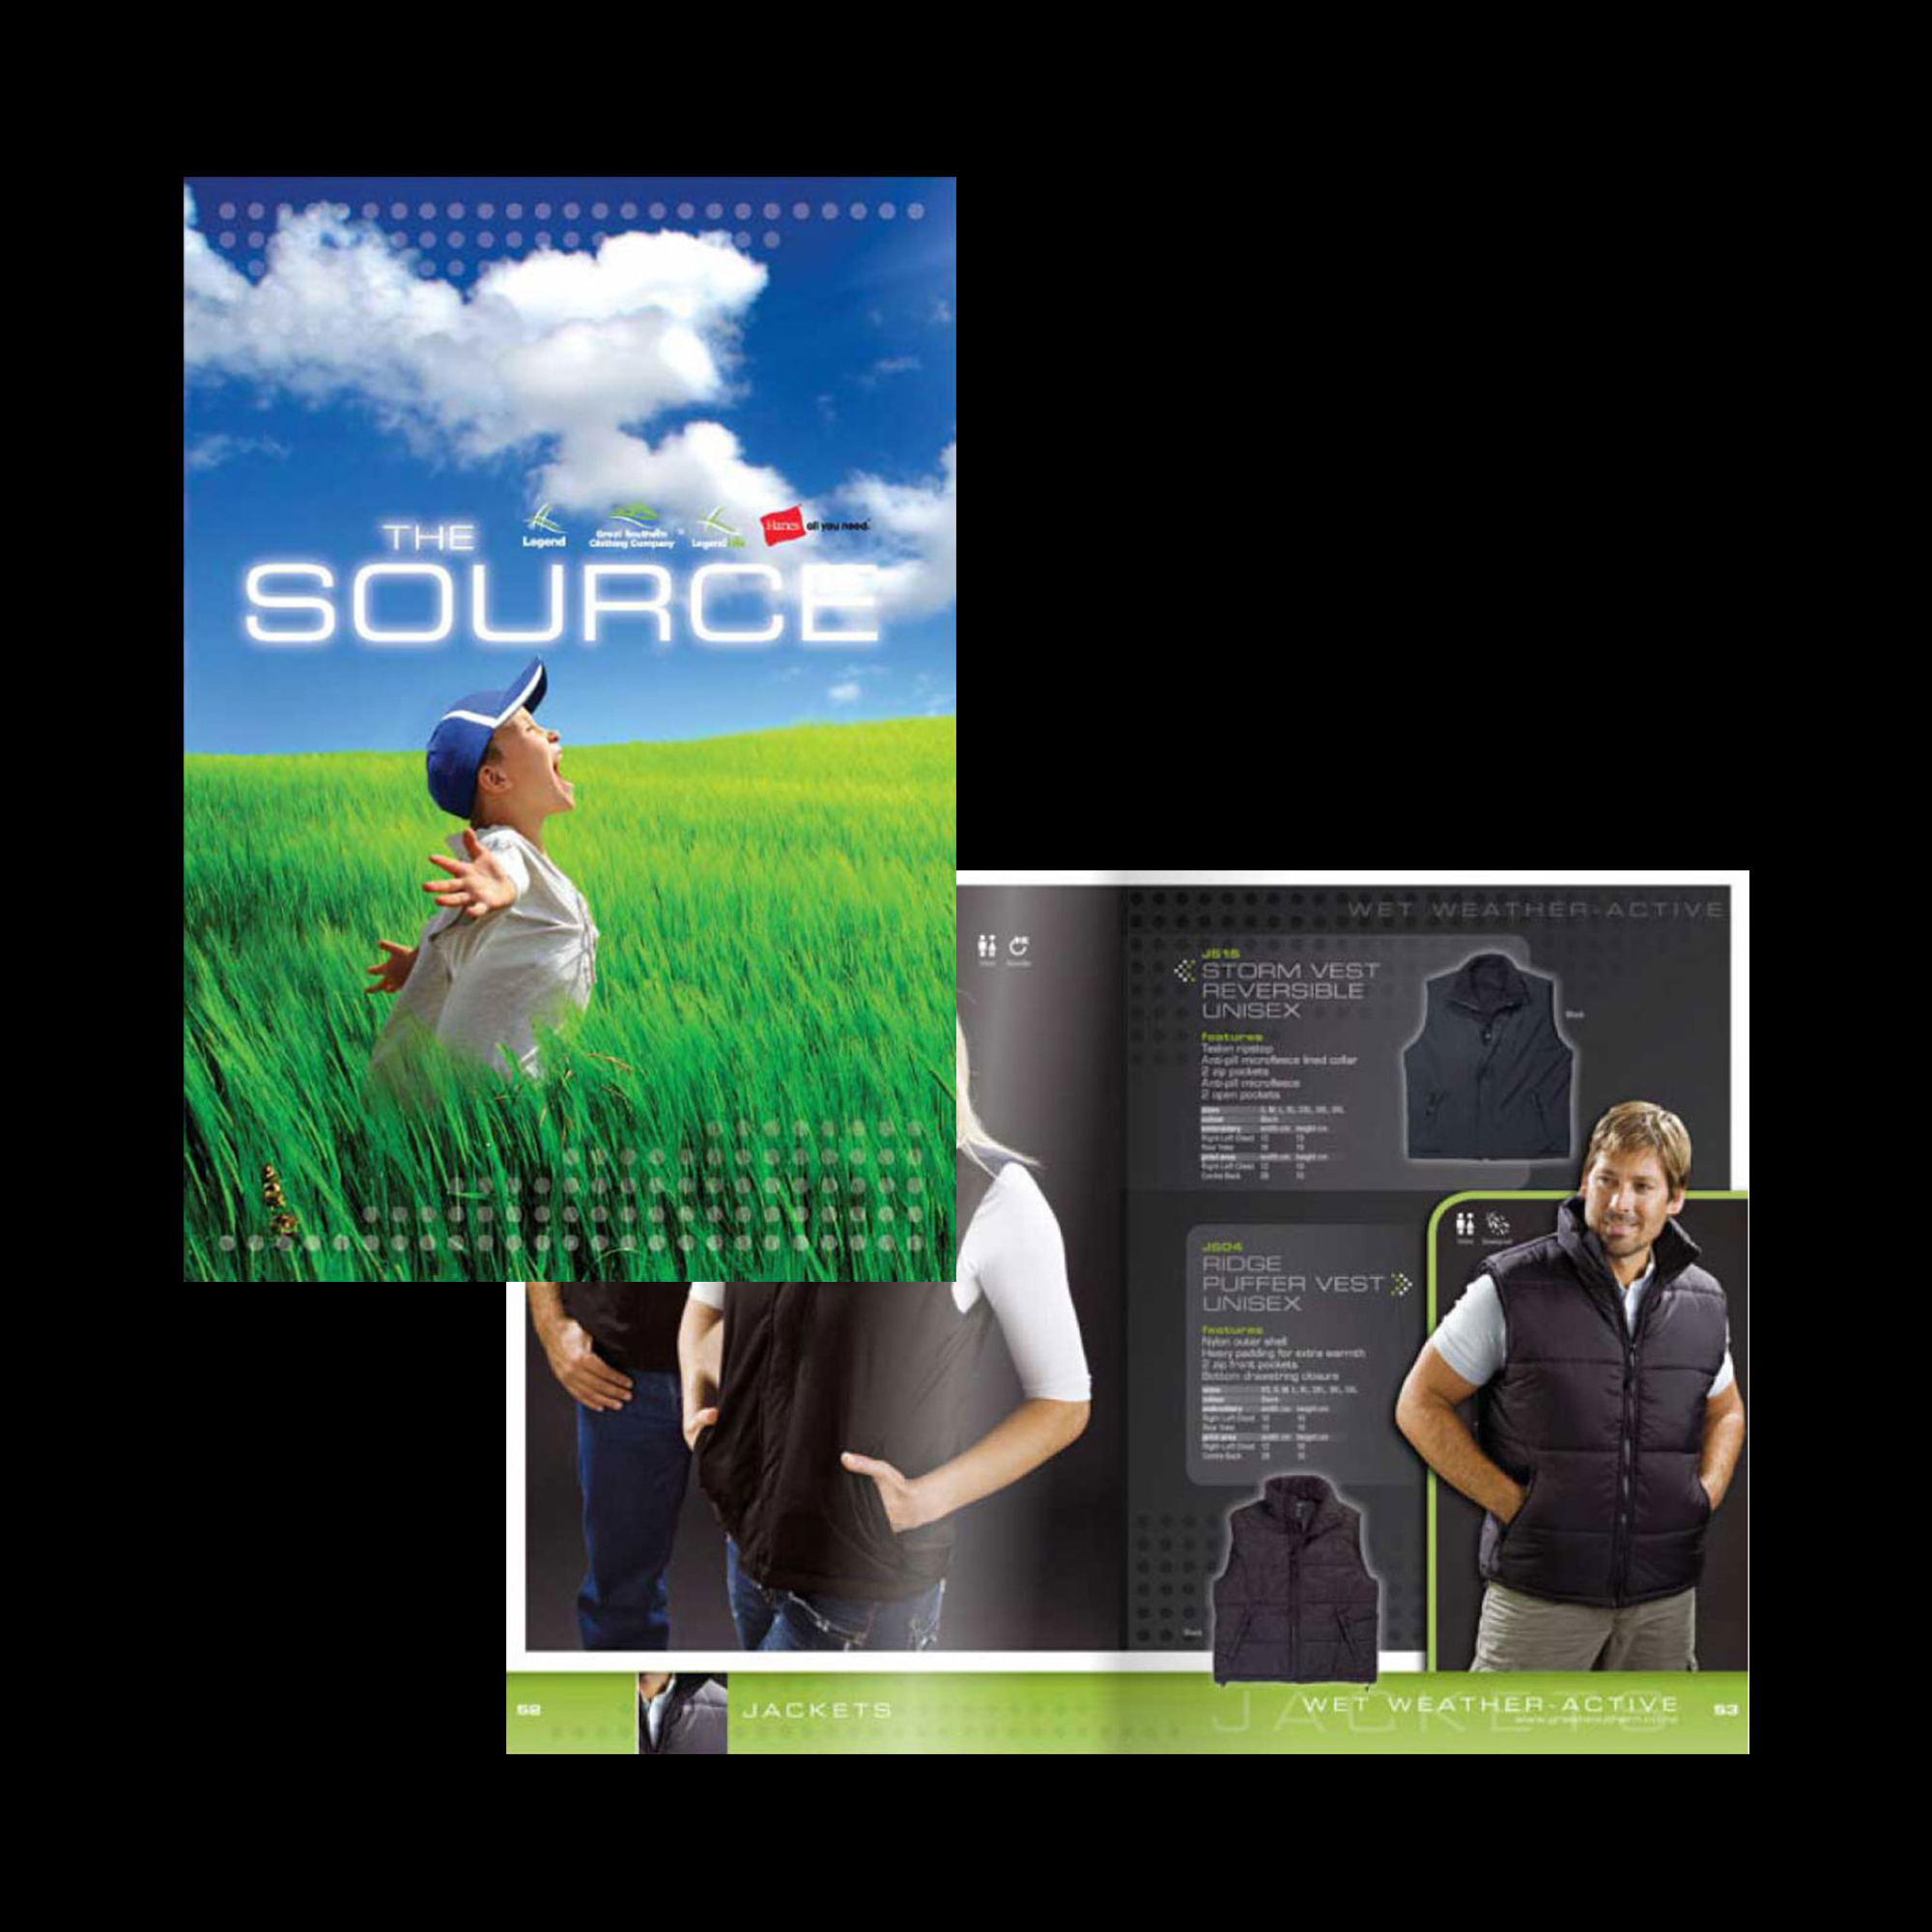 Promotional product brochure design